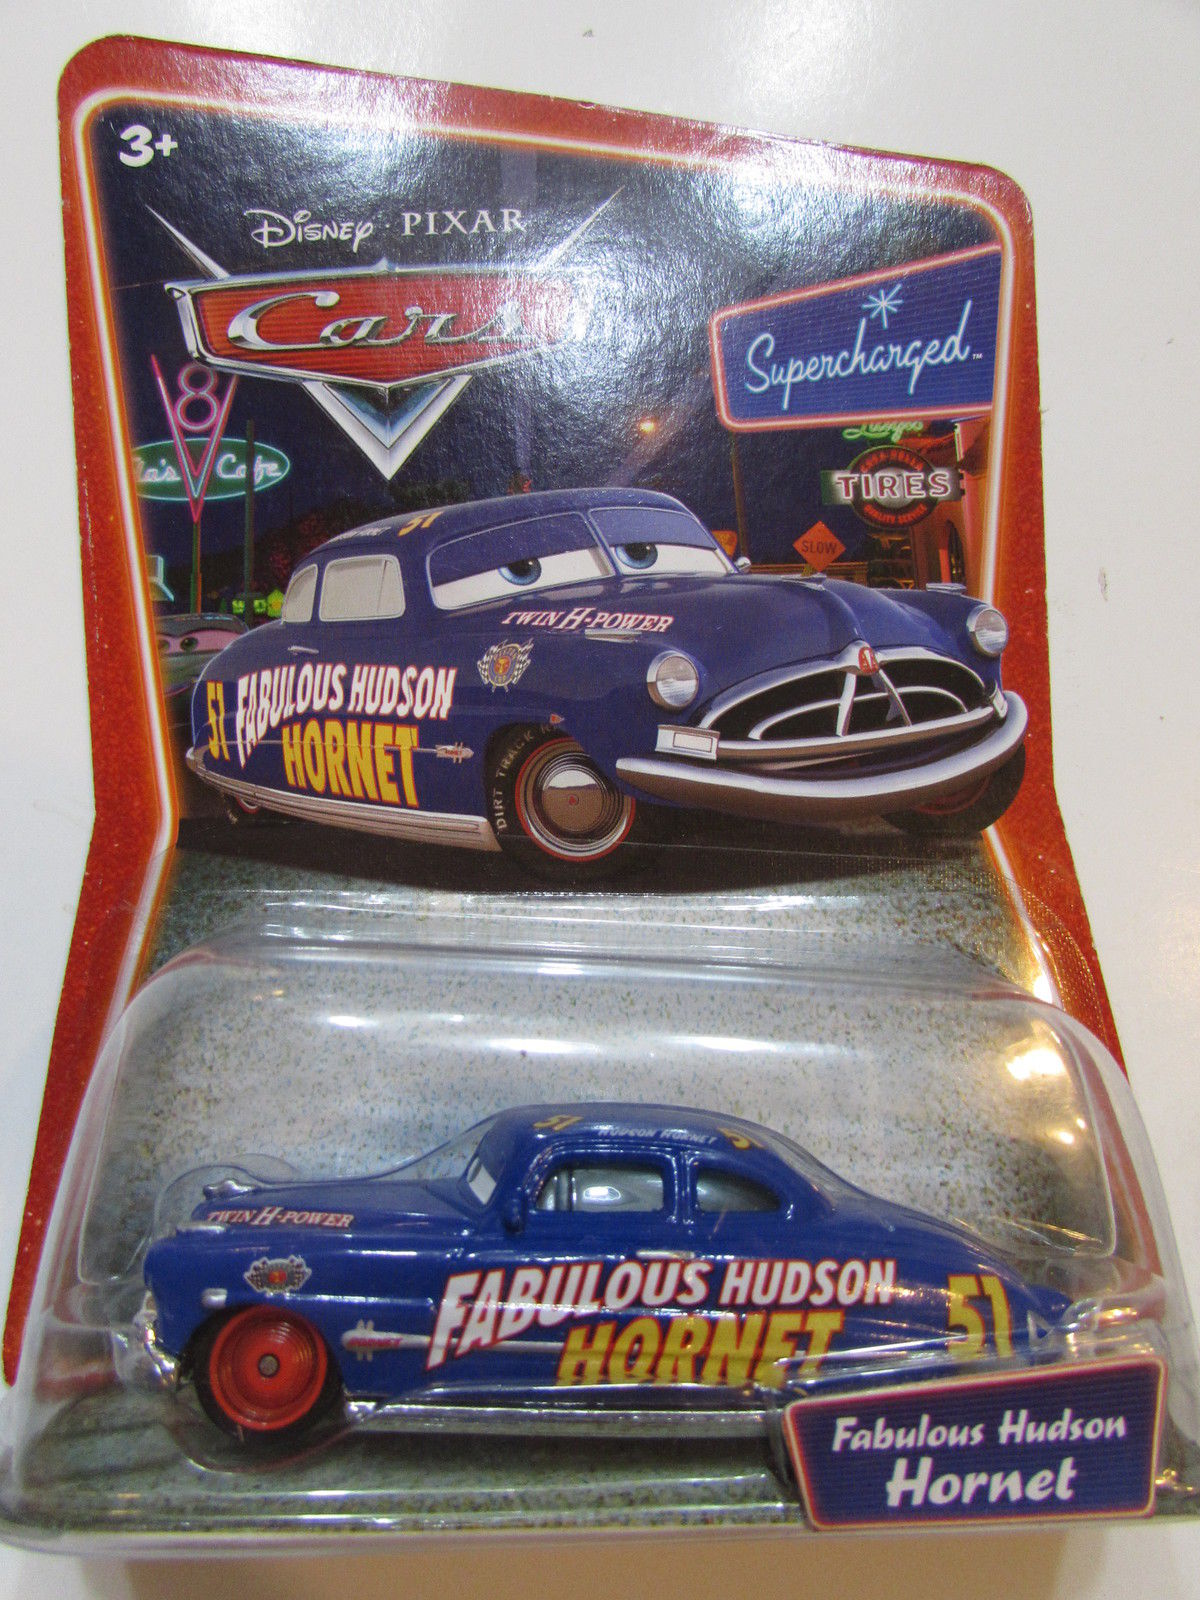 DISNEY PIXAR CARS SUPERCHARGED - FABULOUS HUDSON HORNET